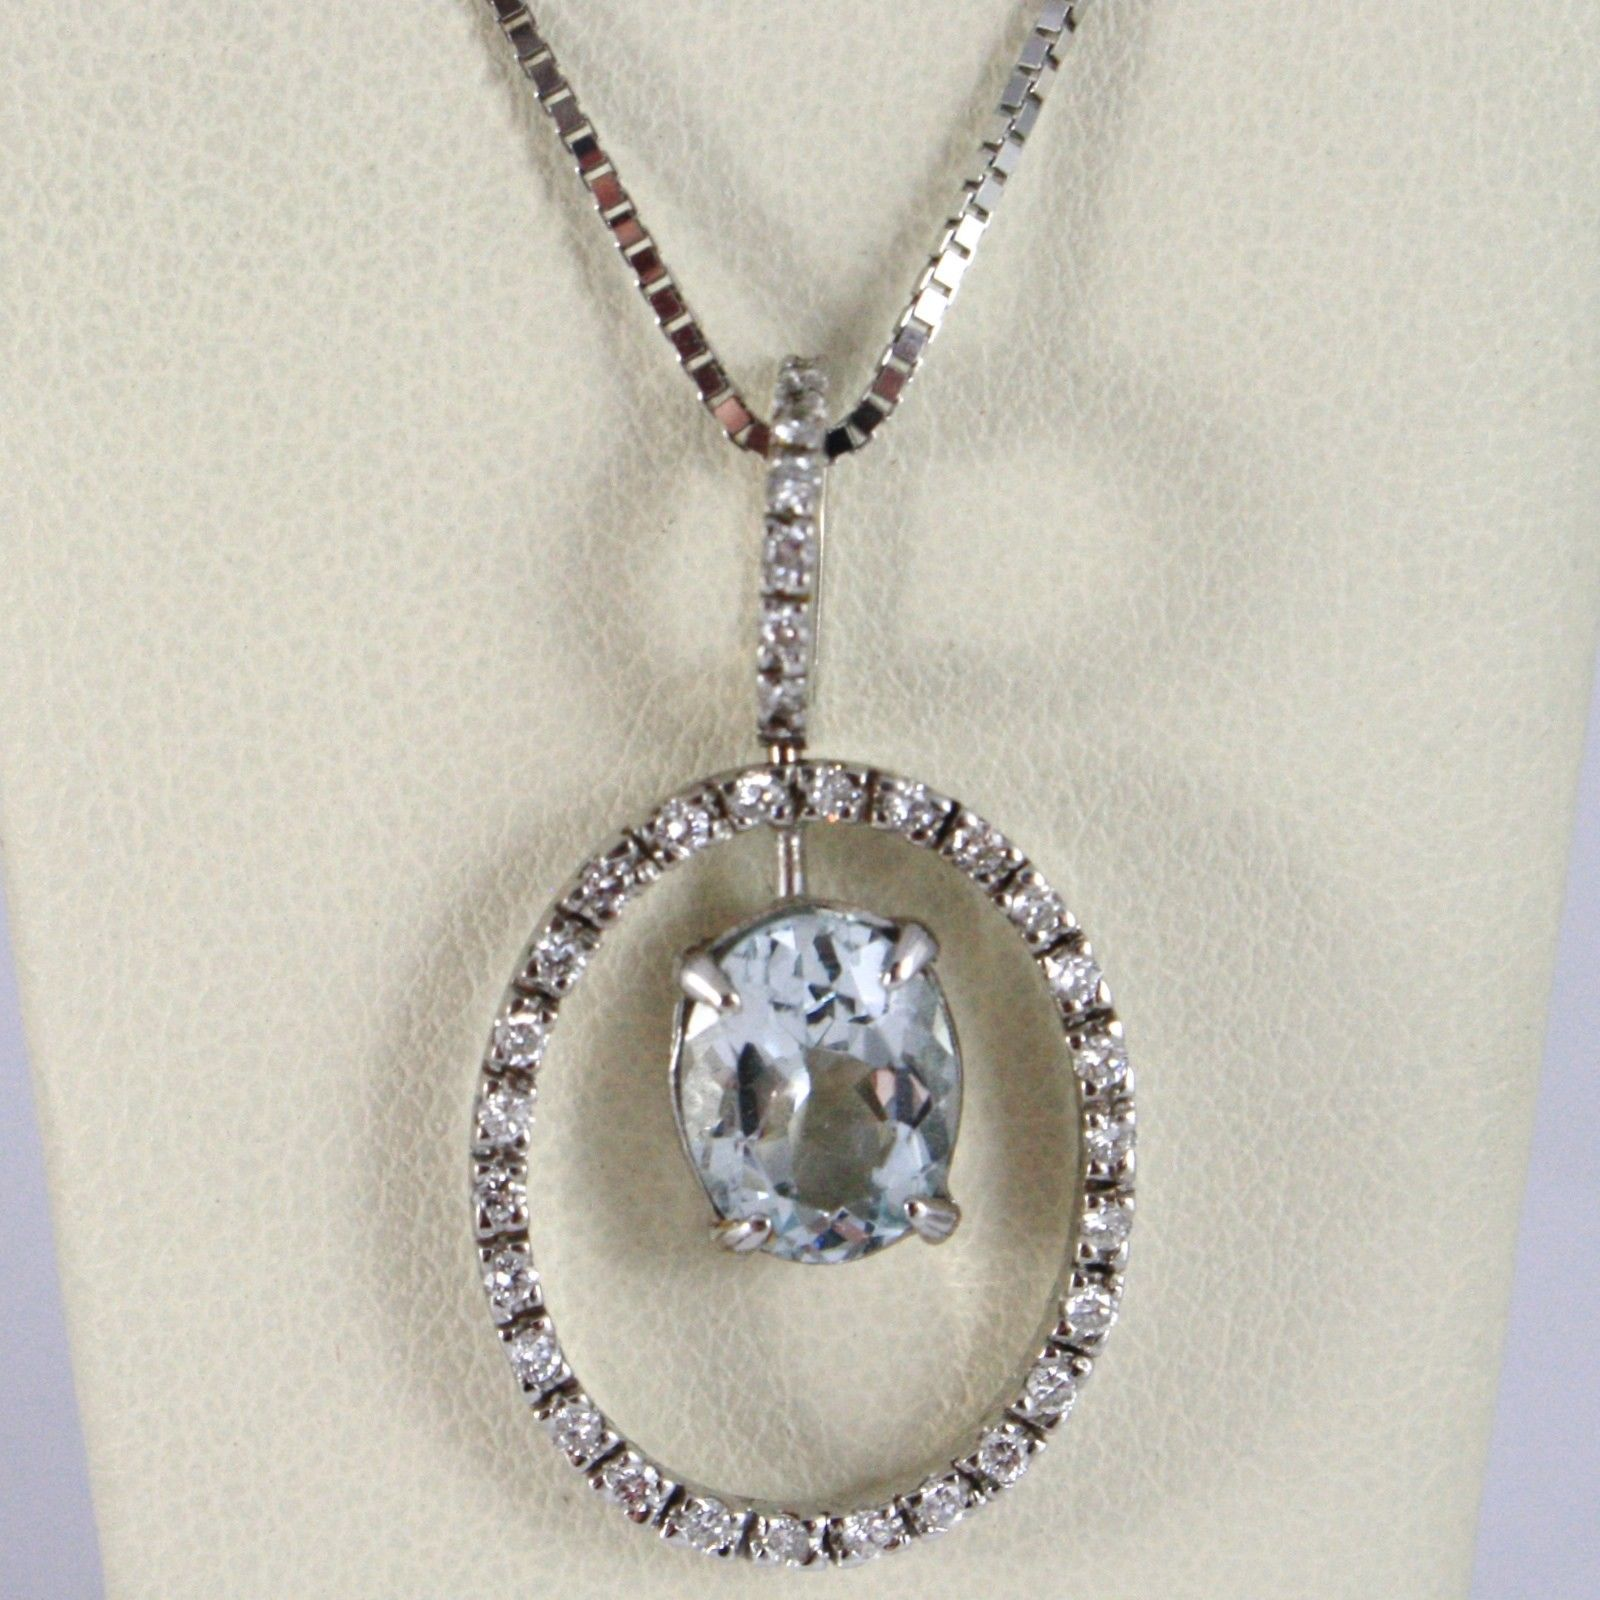 NECKLACE WHITE GOLD 750 - 18K, PENDANT AQUAMARINE AND FRAME OVAL DIAMONDS